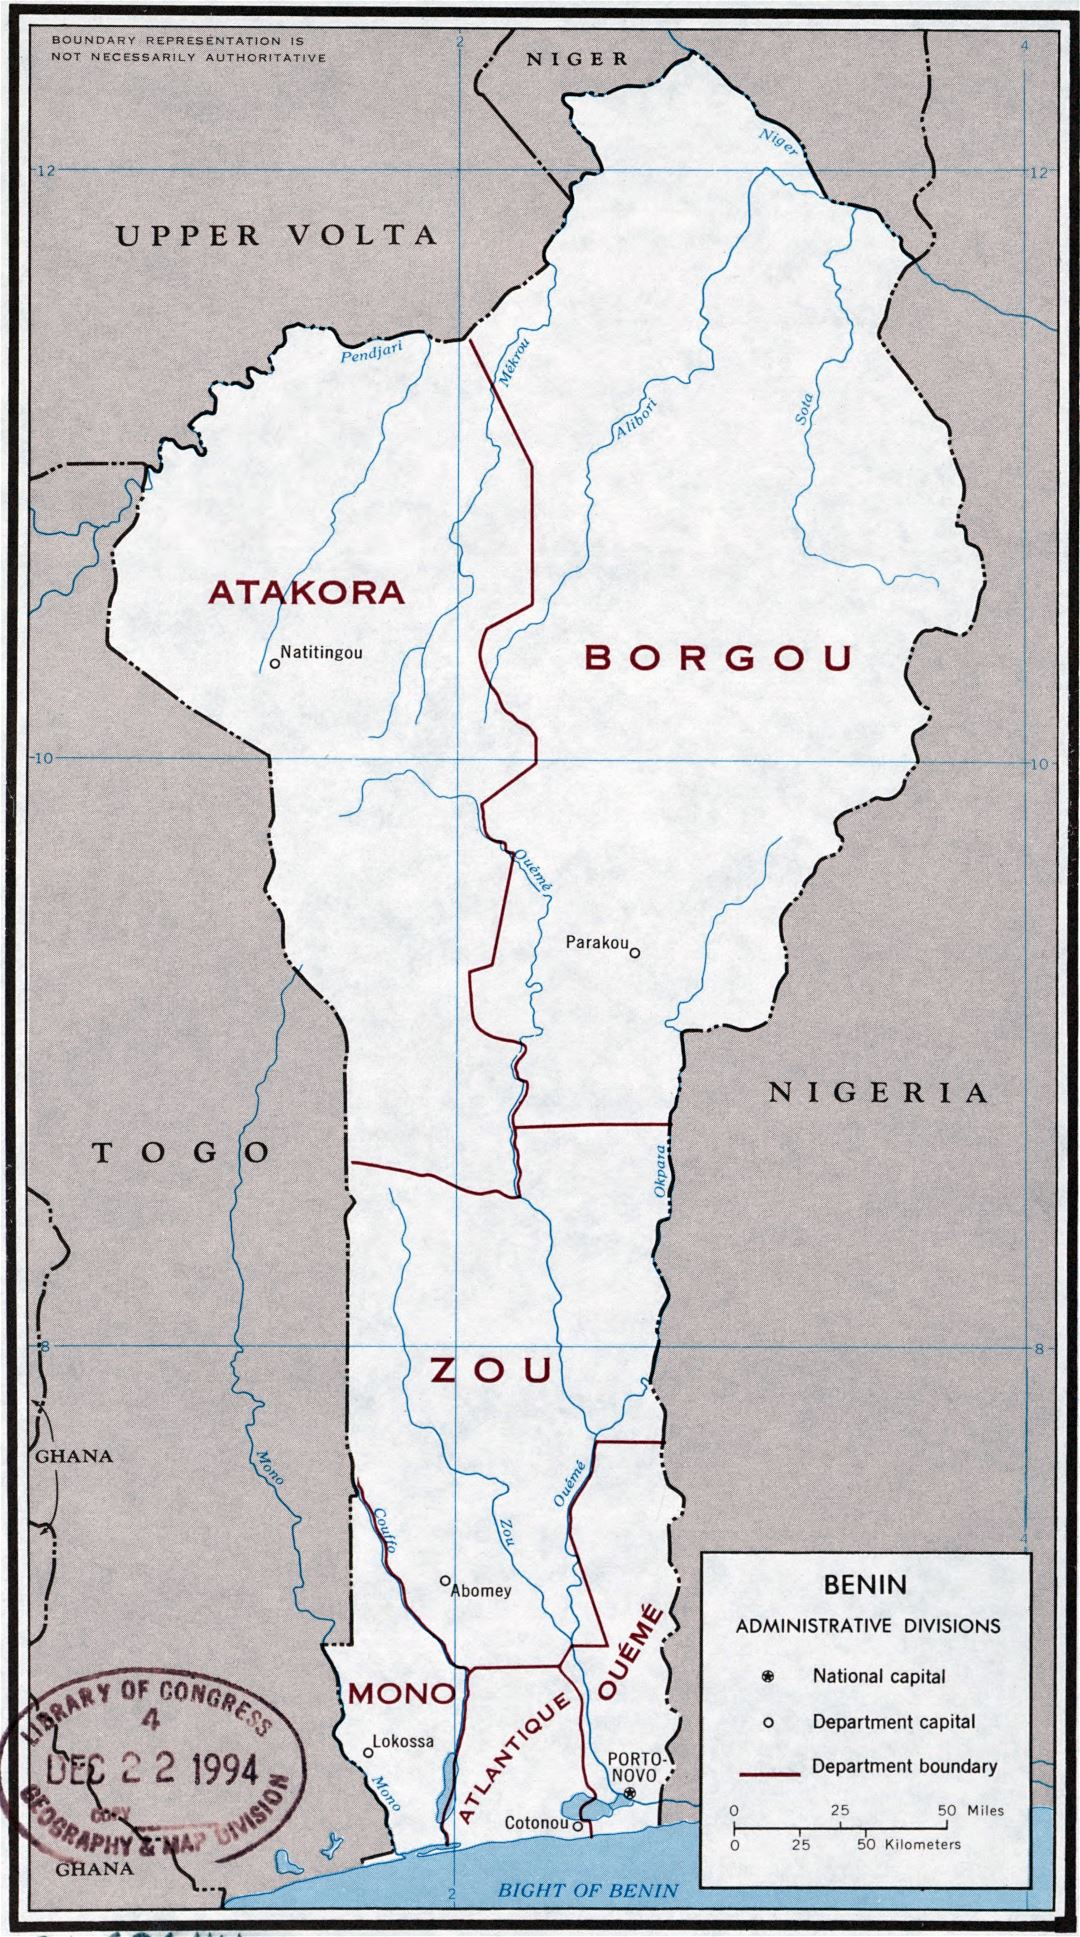 Large scale administrative divisions map of Benin - 1977